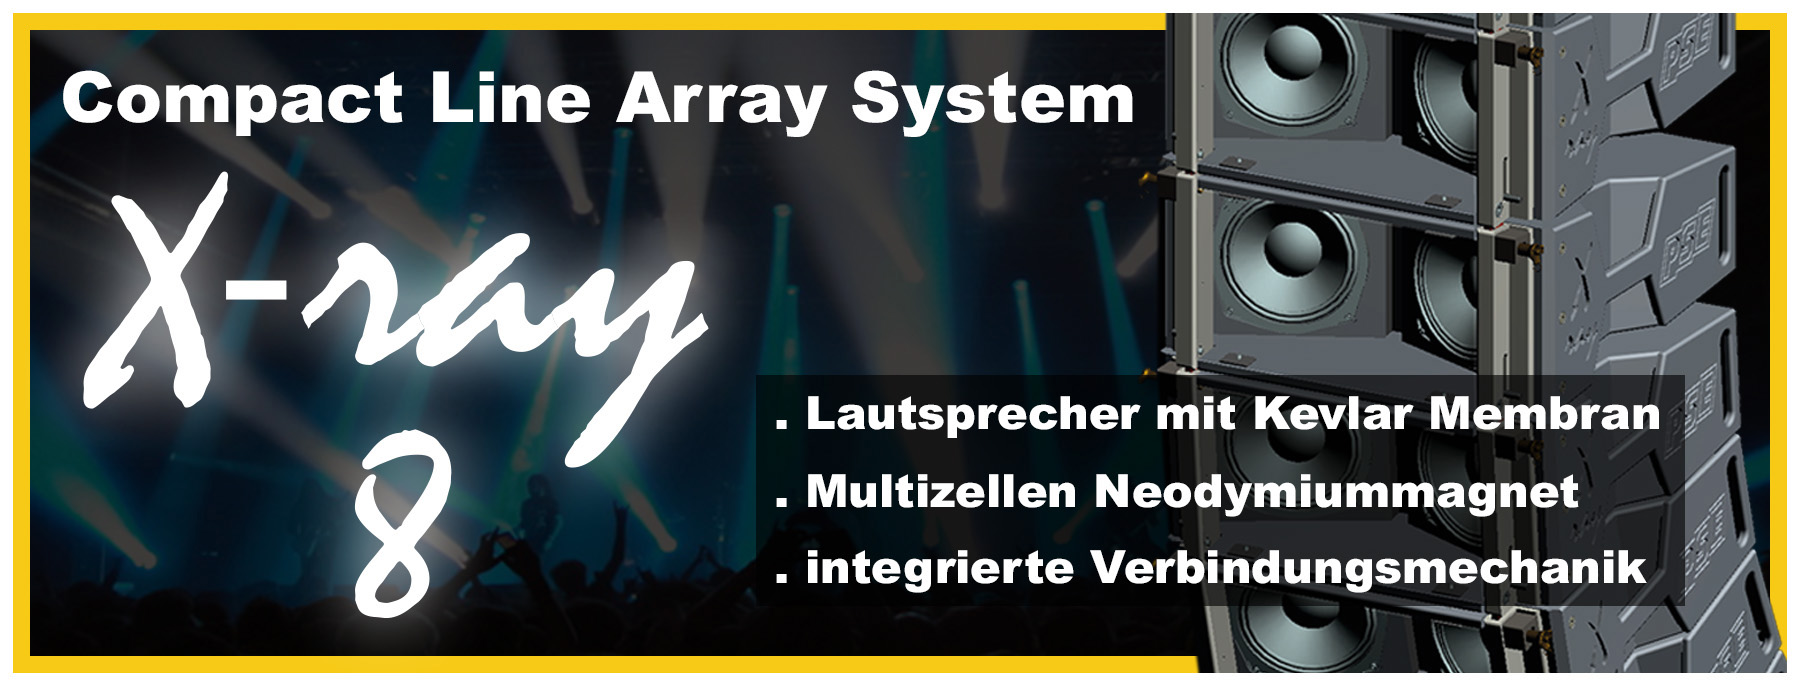 X-ray - compact Line Array Premiere - prolight+sound 2017 Frankfurt